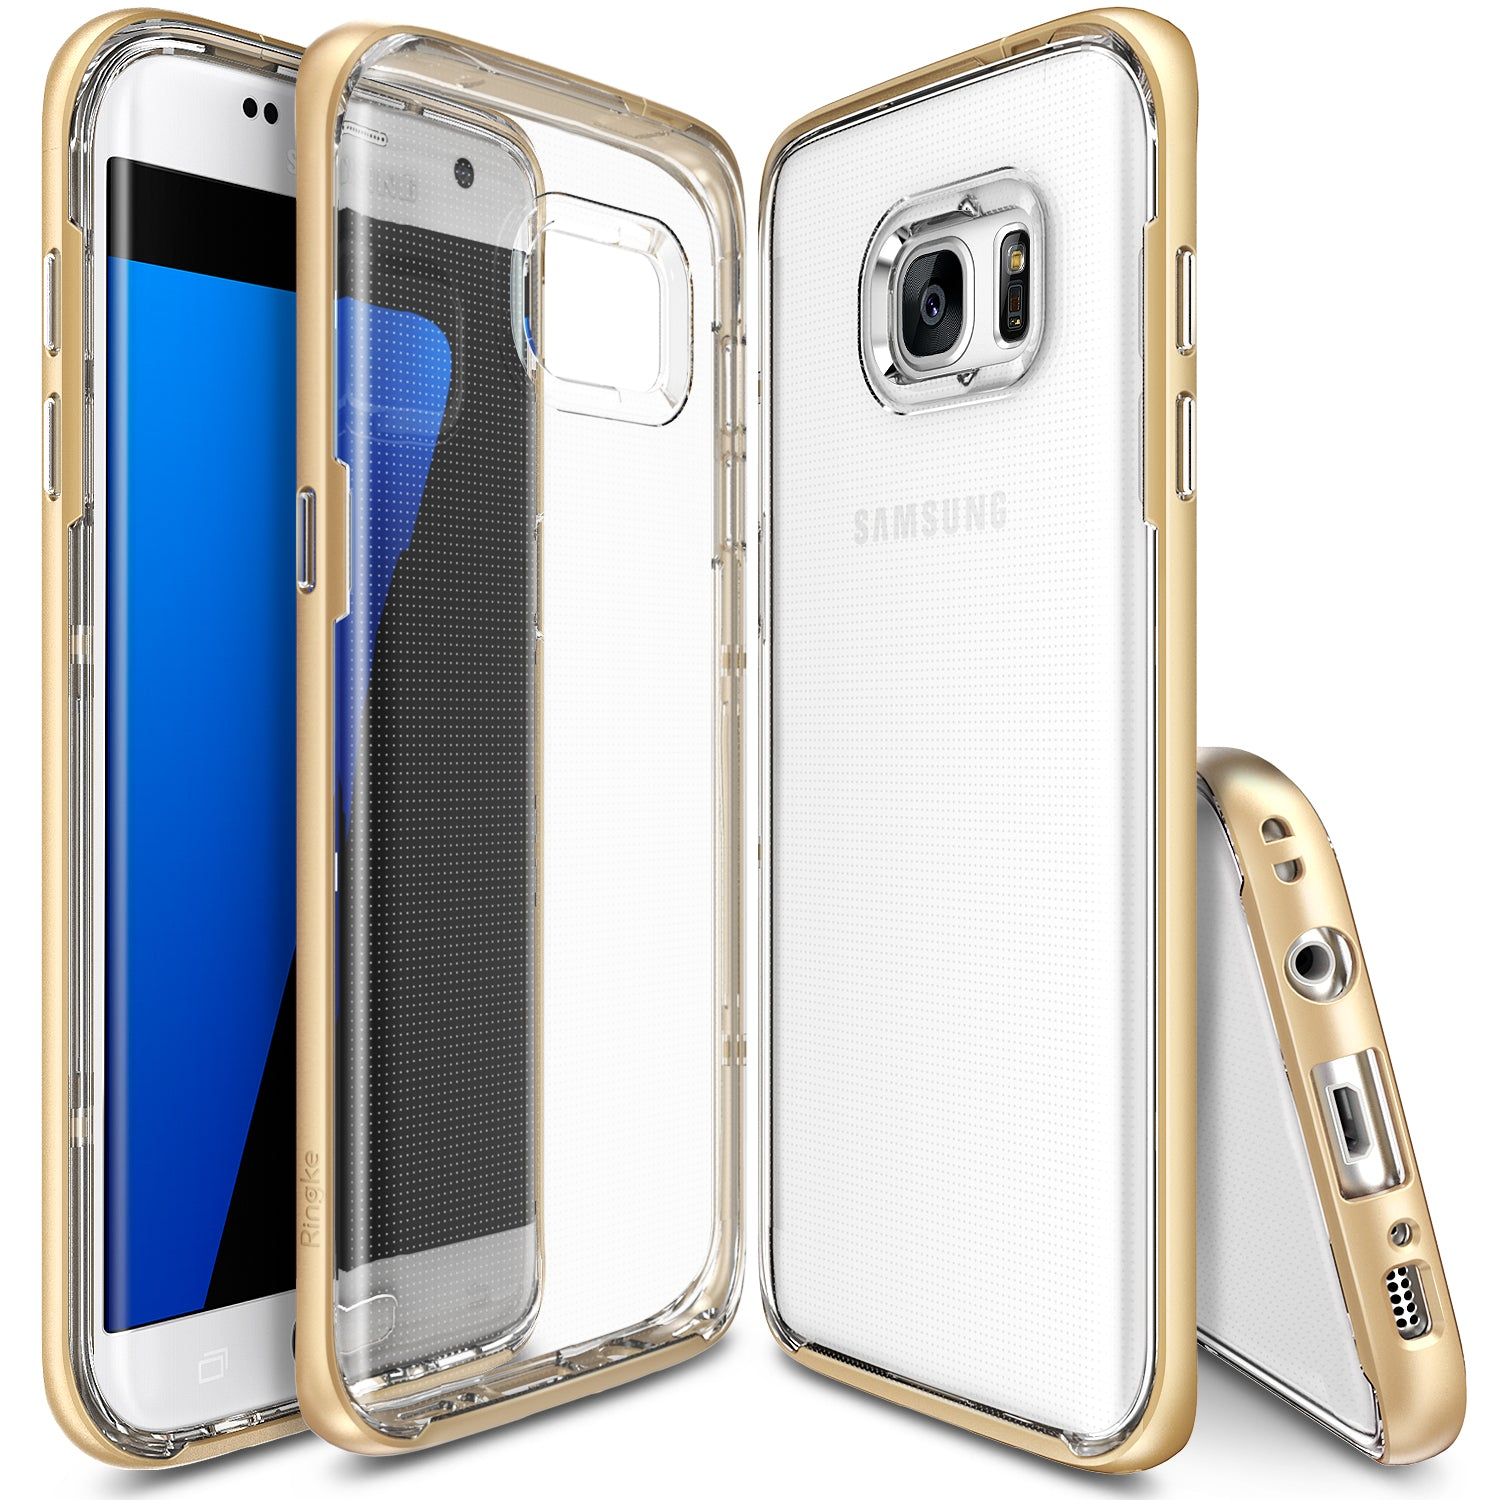 ringke frame clear back advanced bumper protection cover case for galaxy s7 edge royal gold